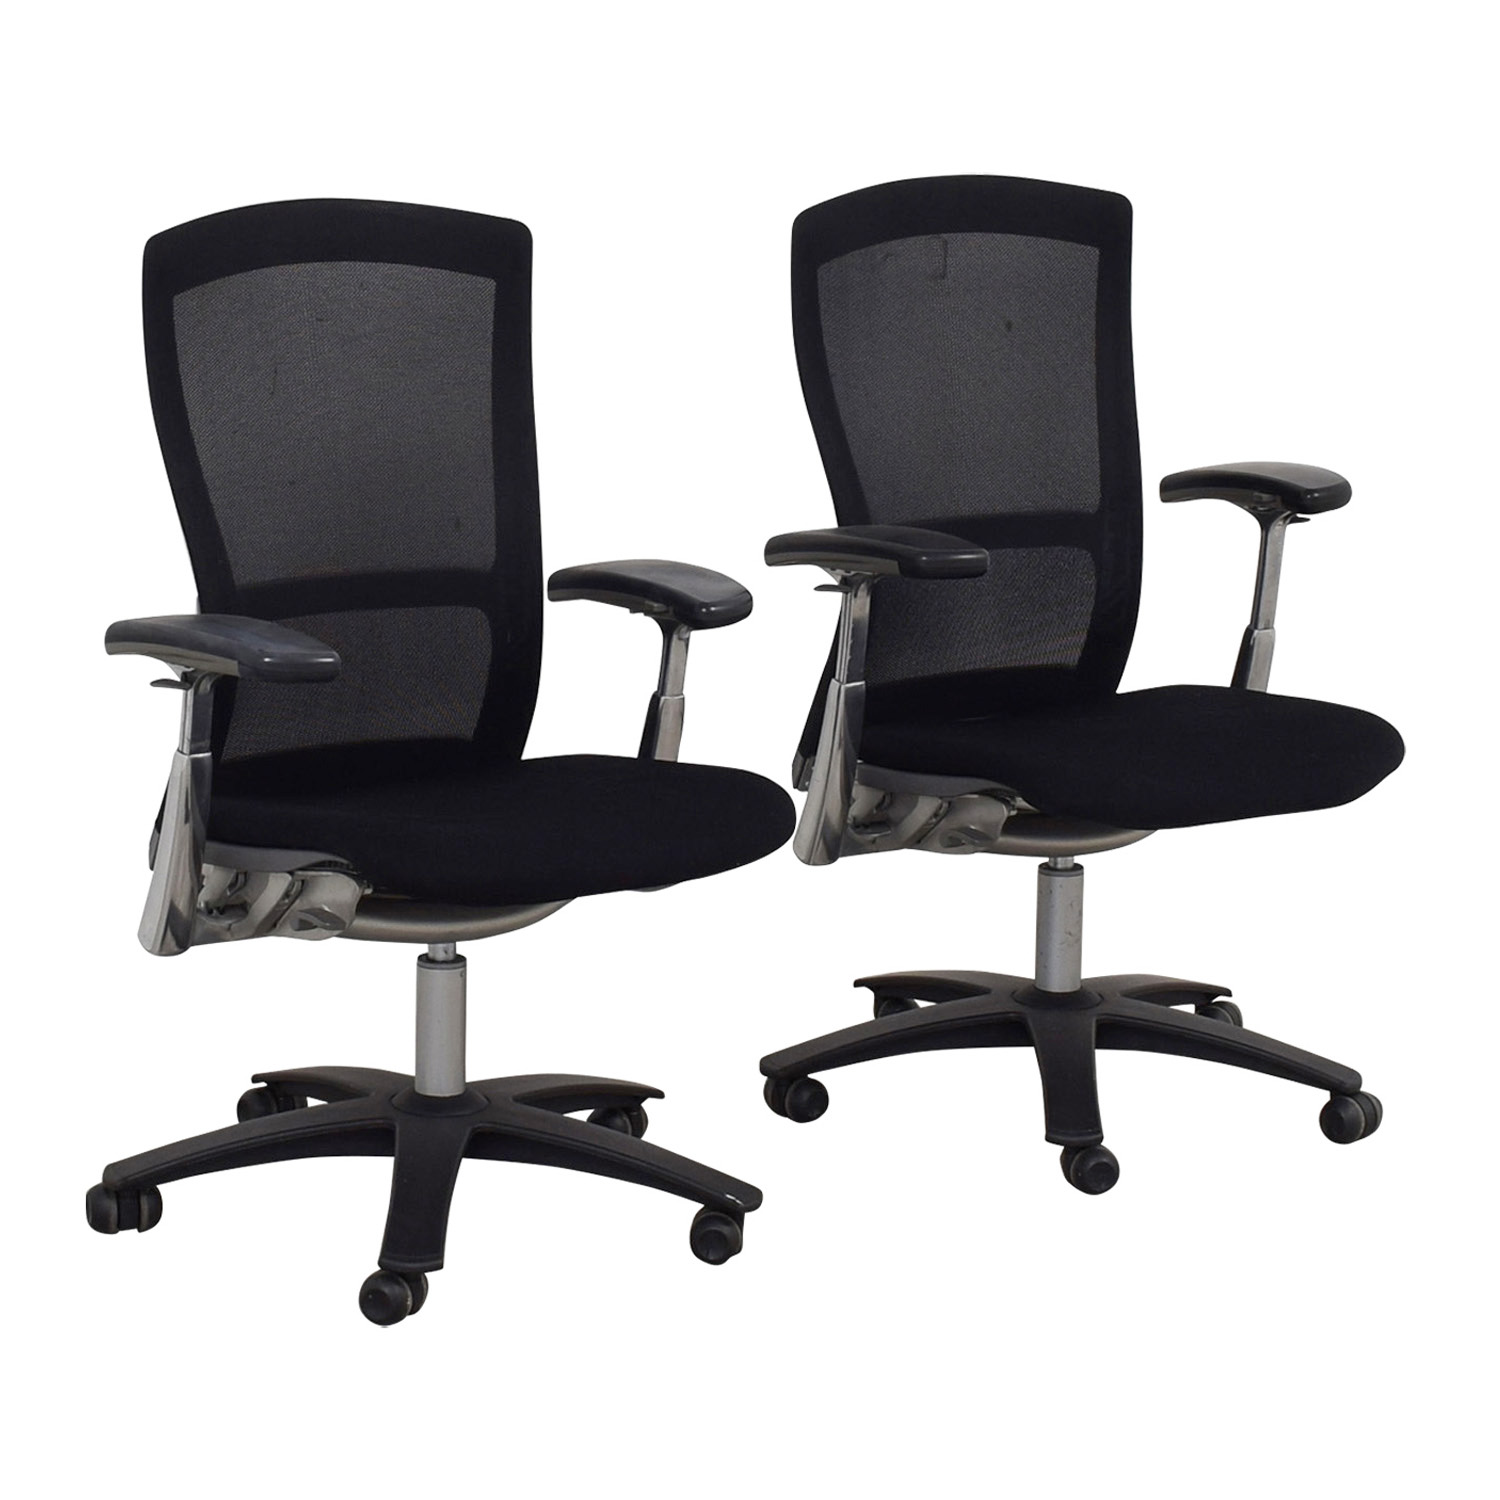 shop Knoll Life Black Desk Chairs Knoll Tables